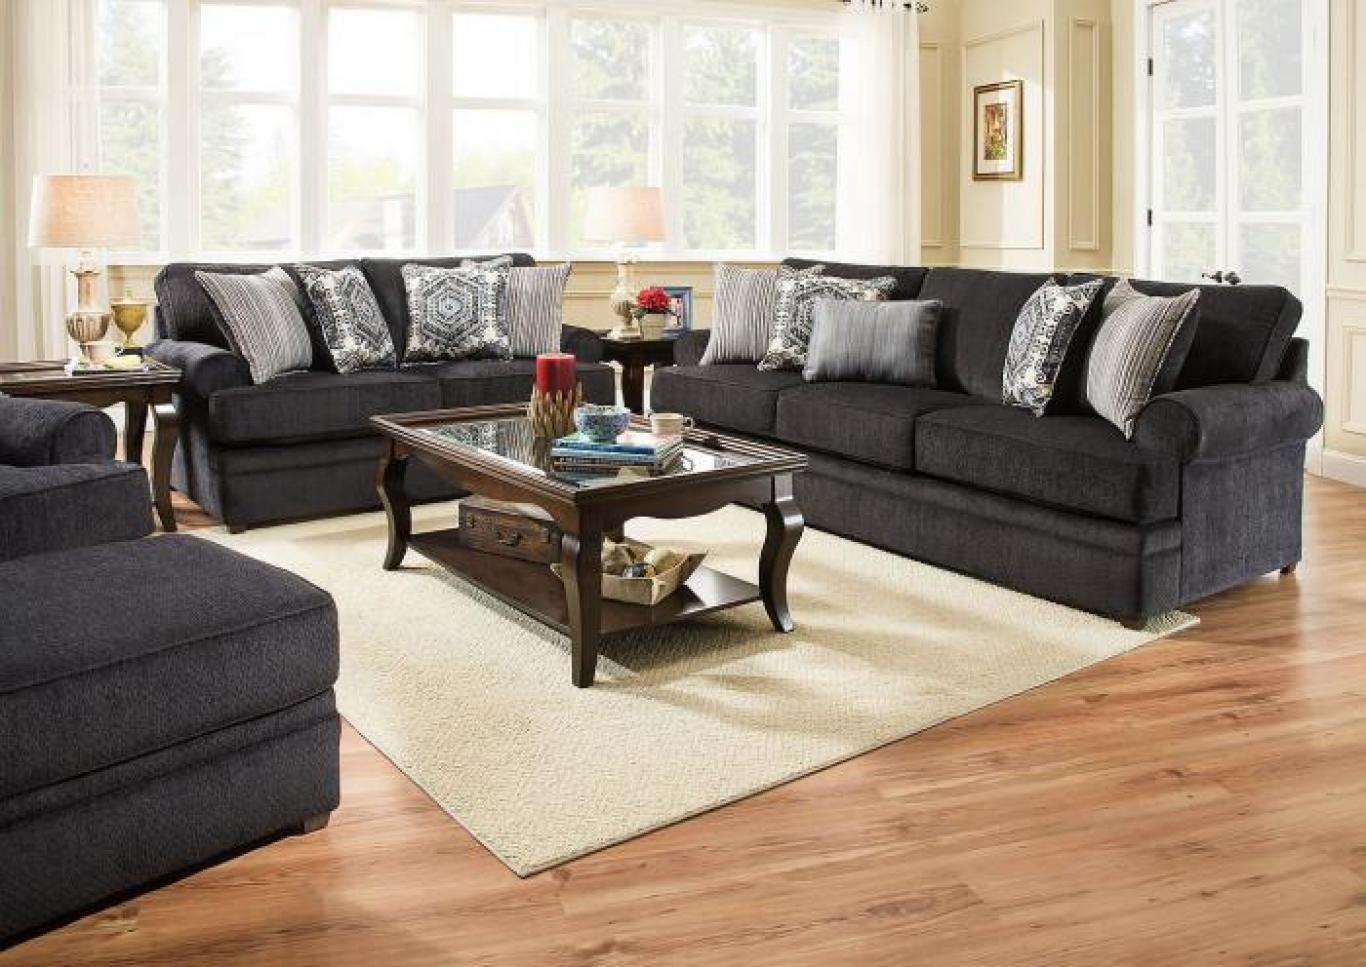 Simmons Roosevelt Stationary Sofa and Love Seat - Slate,Instore